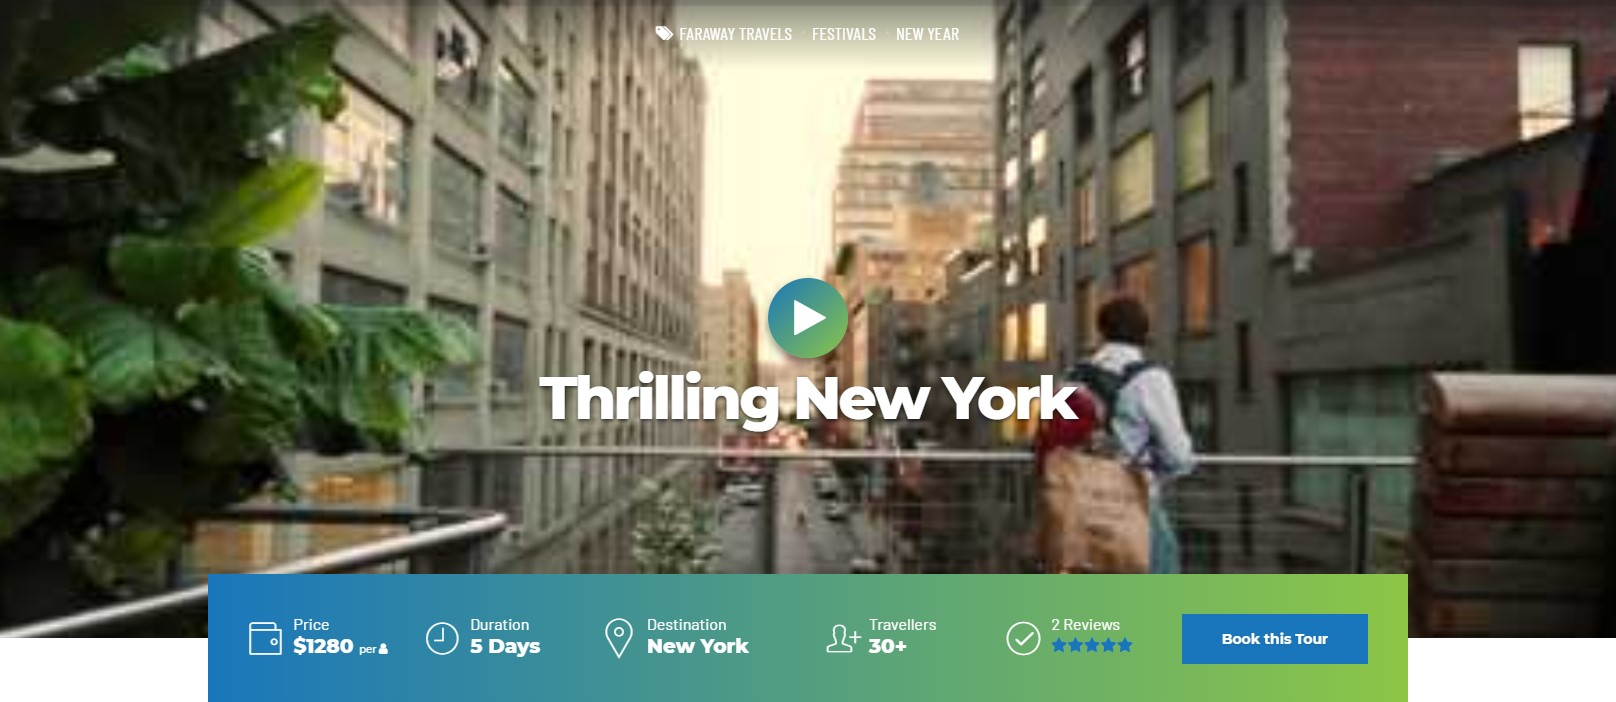 https://documentation.bold-themes.com/travelicious/wp-content/uploads/sites/37/2018/10/header-featured-video.jpg